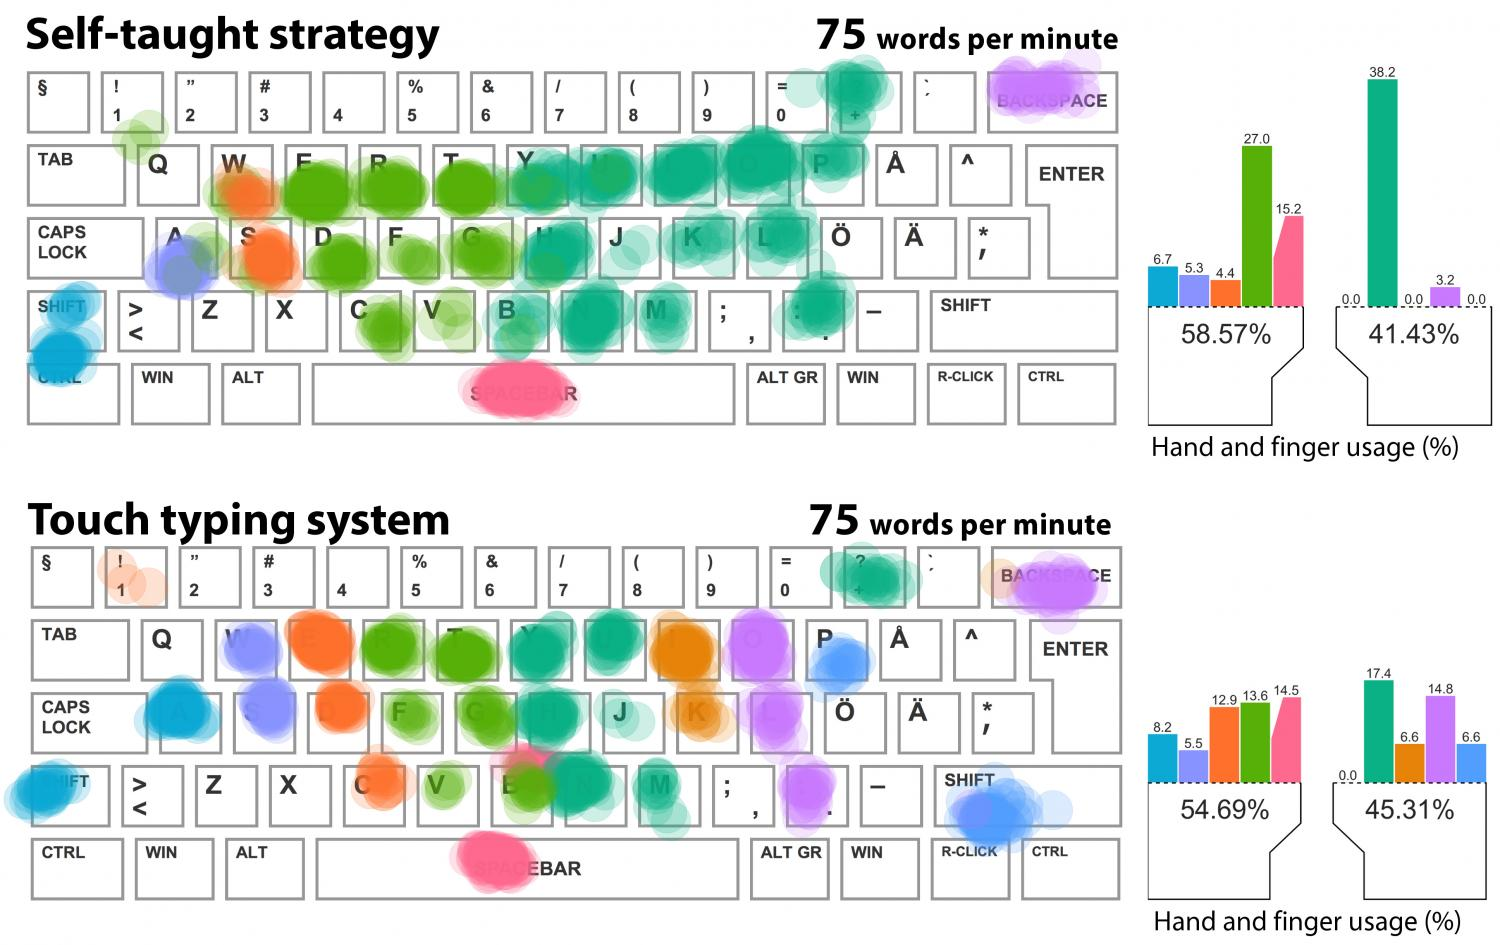 Ten Fingers Not Needed For Fast Typing Study Shows Finger Diagram Which Presses Key Strategy Of A Self Taught Typist Compared To The Touch System